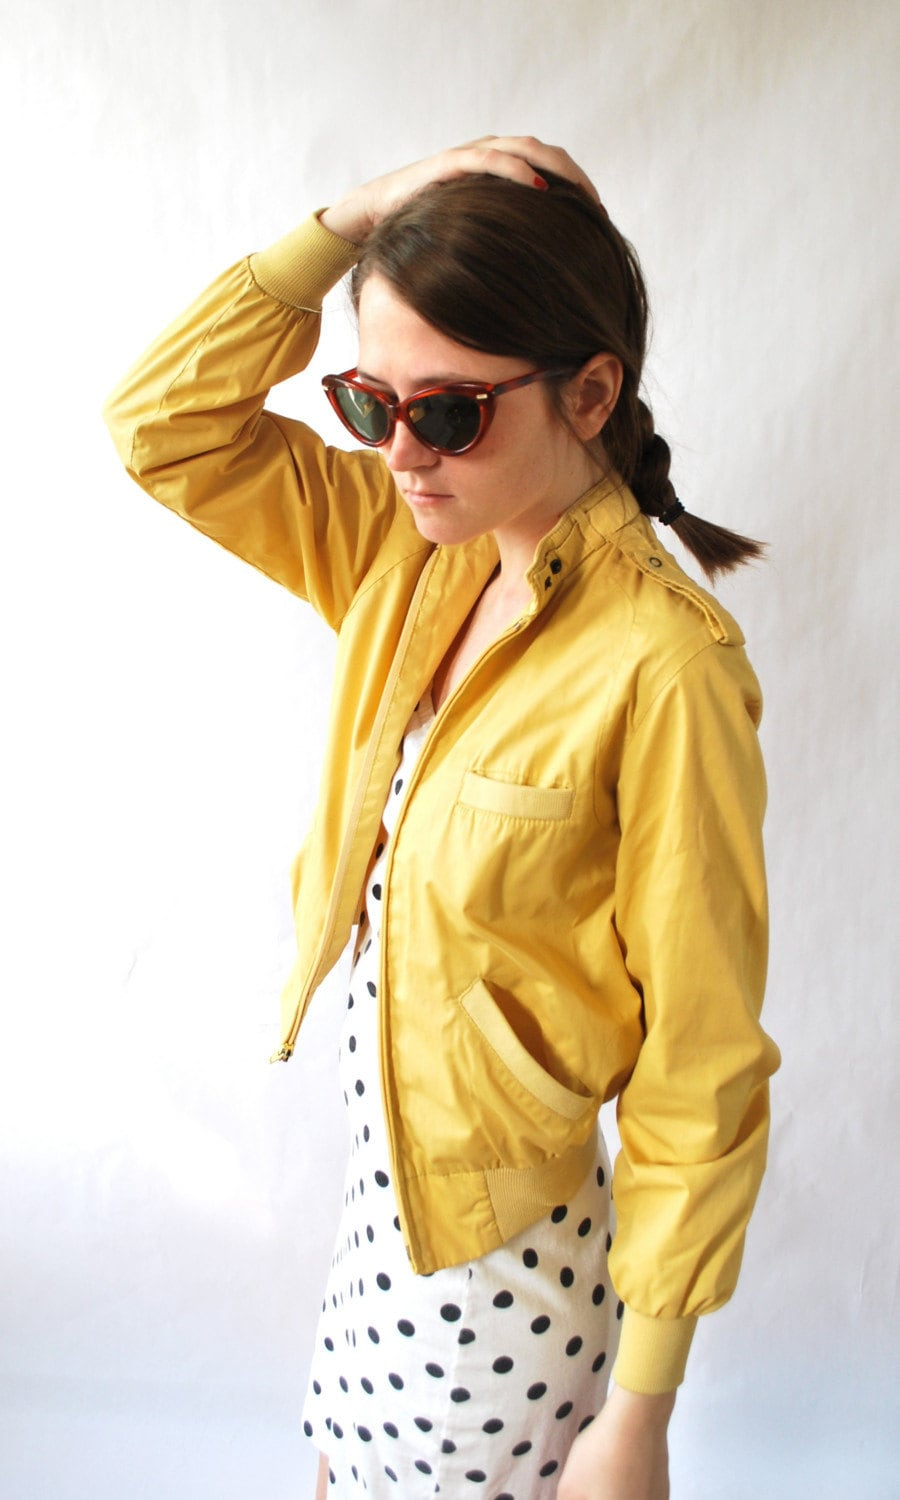 Vintage Women's Members Only Jacket by HereandThereVintage on Etsy